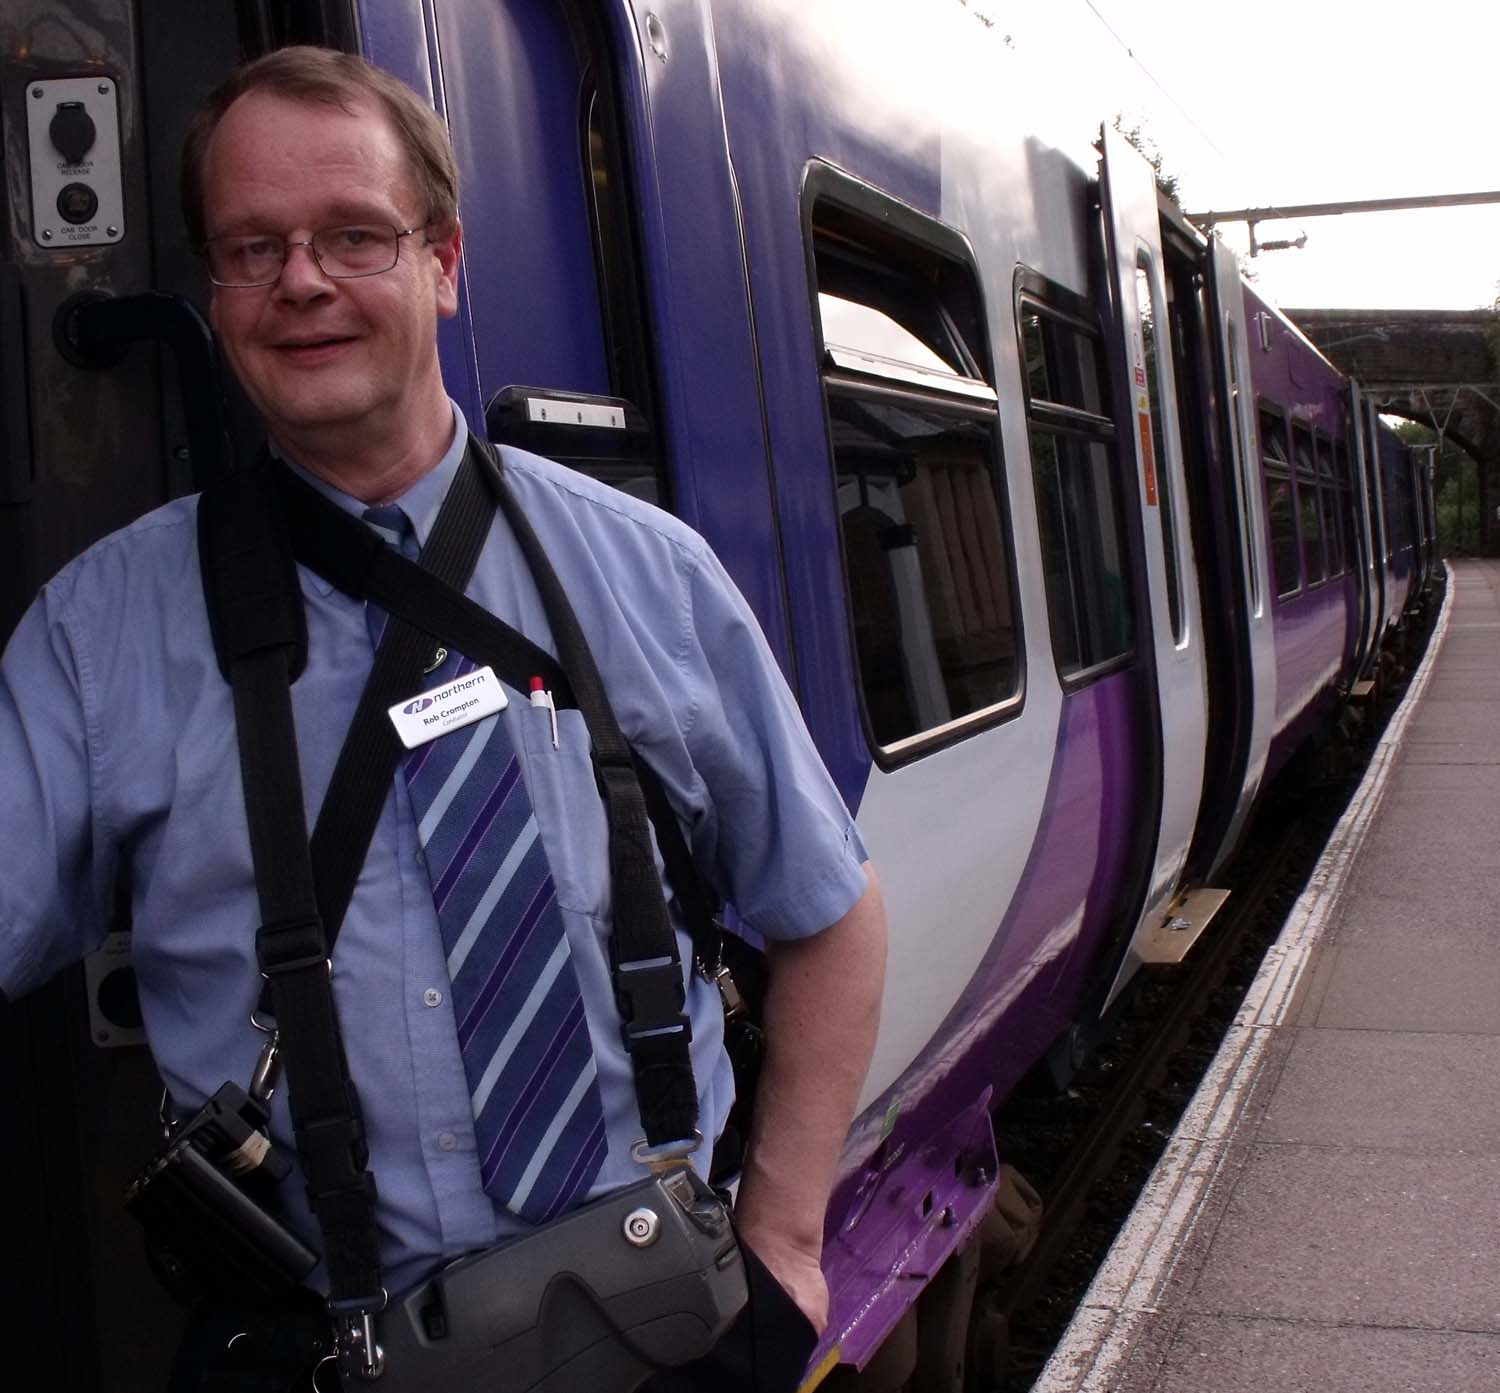 Rob Crompton,Guard 1843 HDF Hadfield Royston Vasey MAN Manchester Piccadilly electric train Northern Rail service,365days,hotpix!